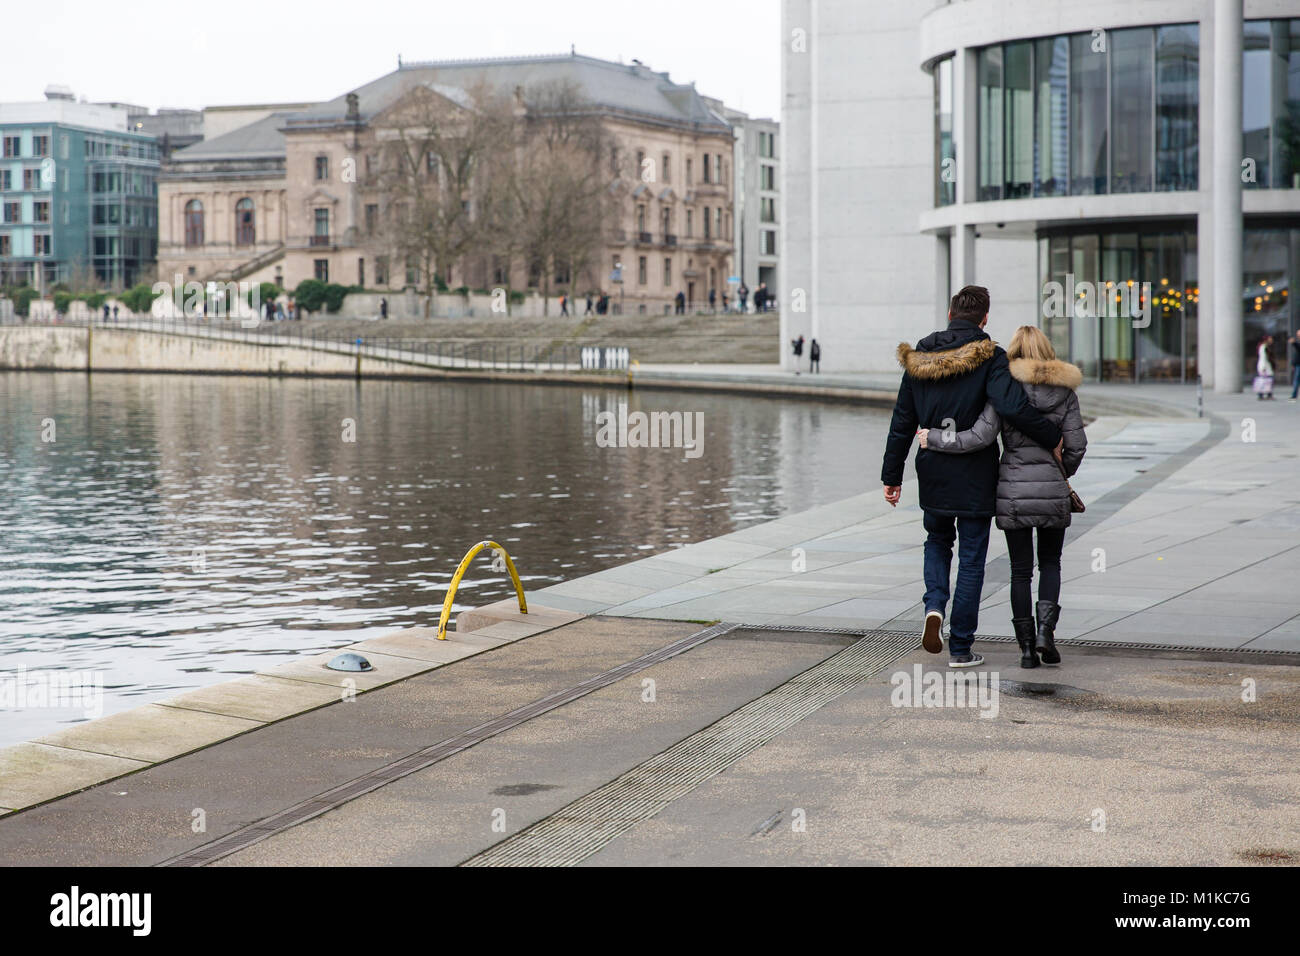 Couple walking along the river Spree surrounded by modern architecture of government district in German capital - Stock Image